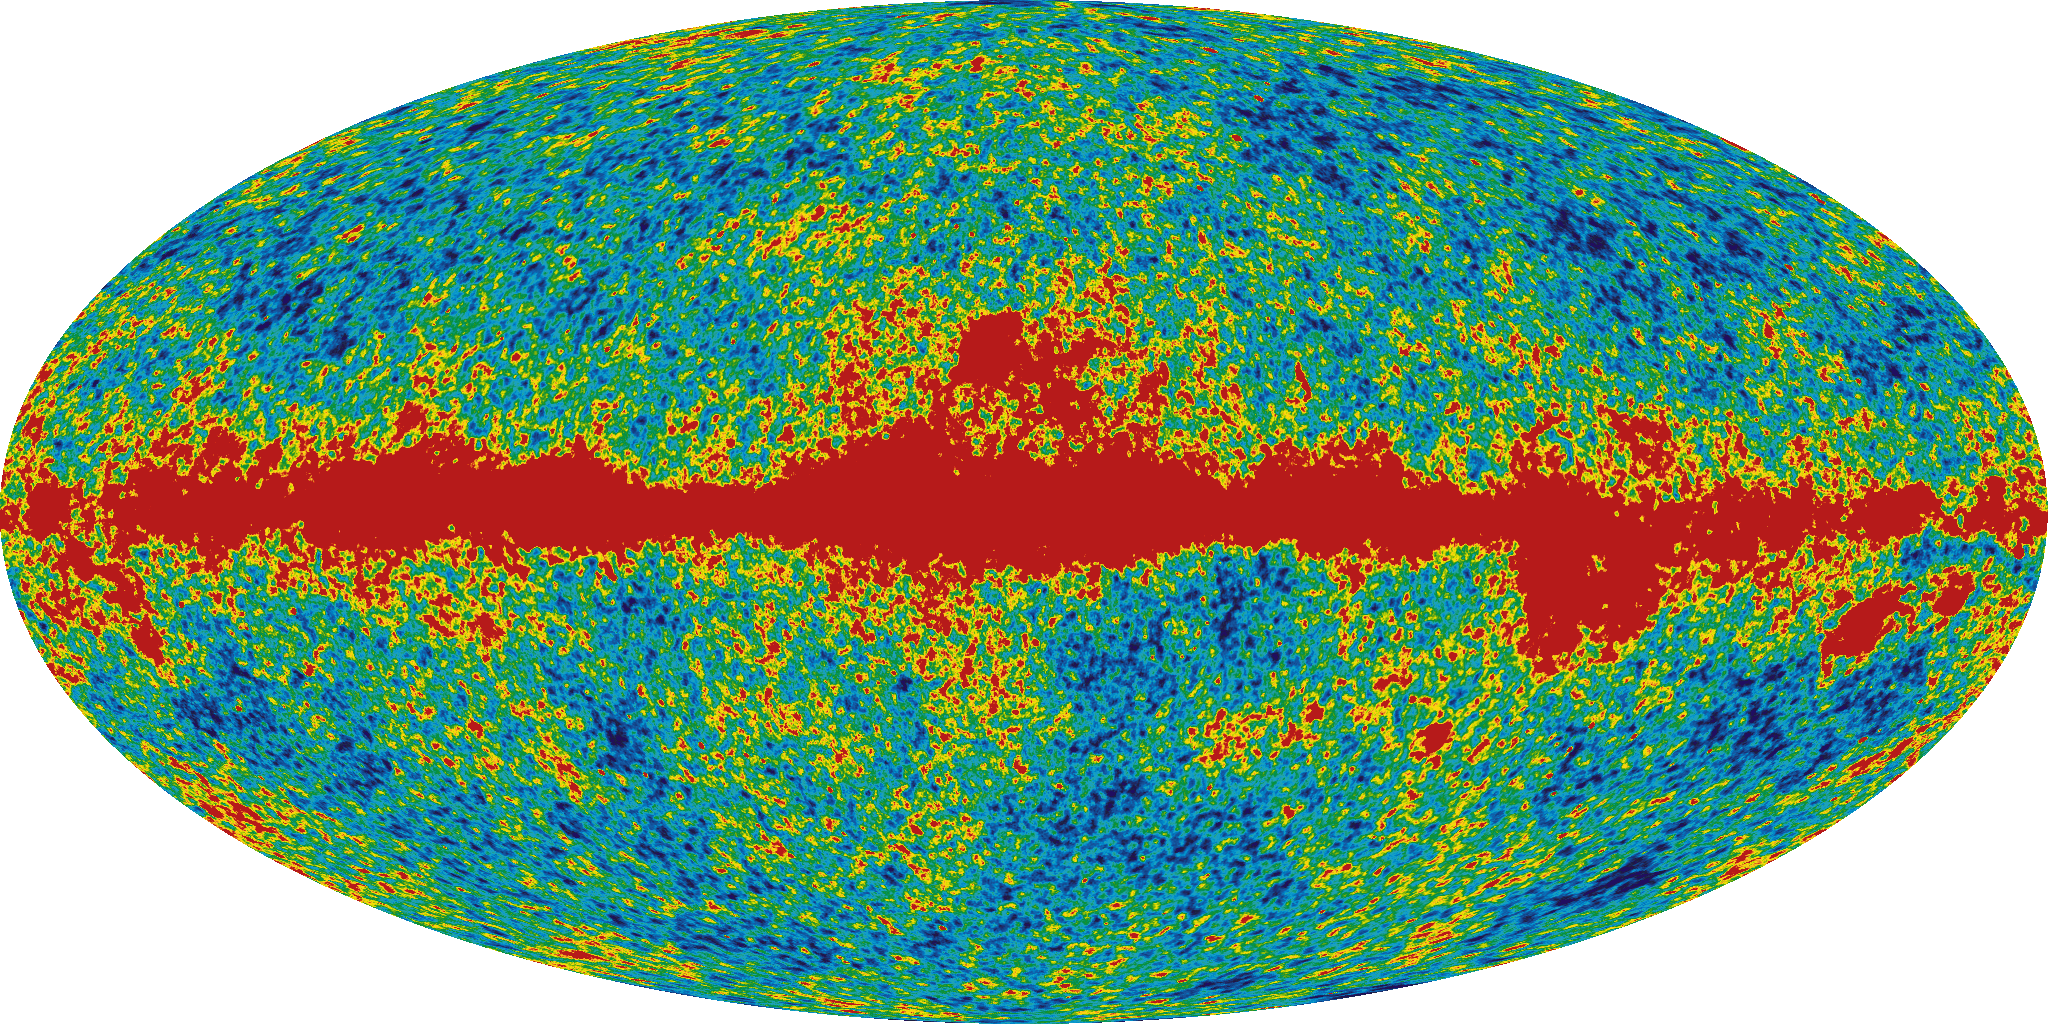 galactic cosmic radiation model and its applications